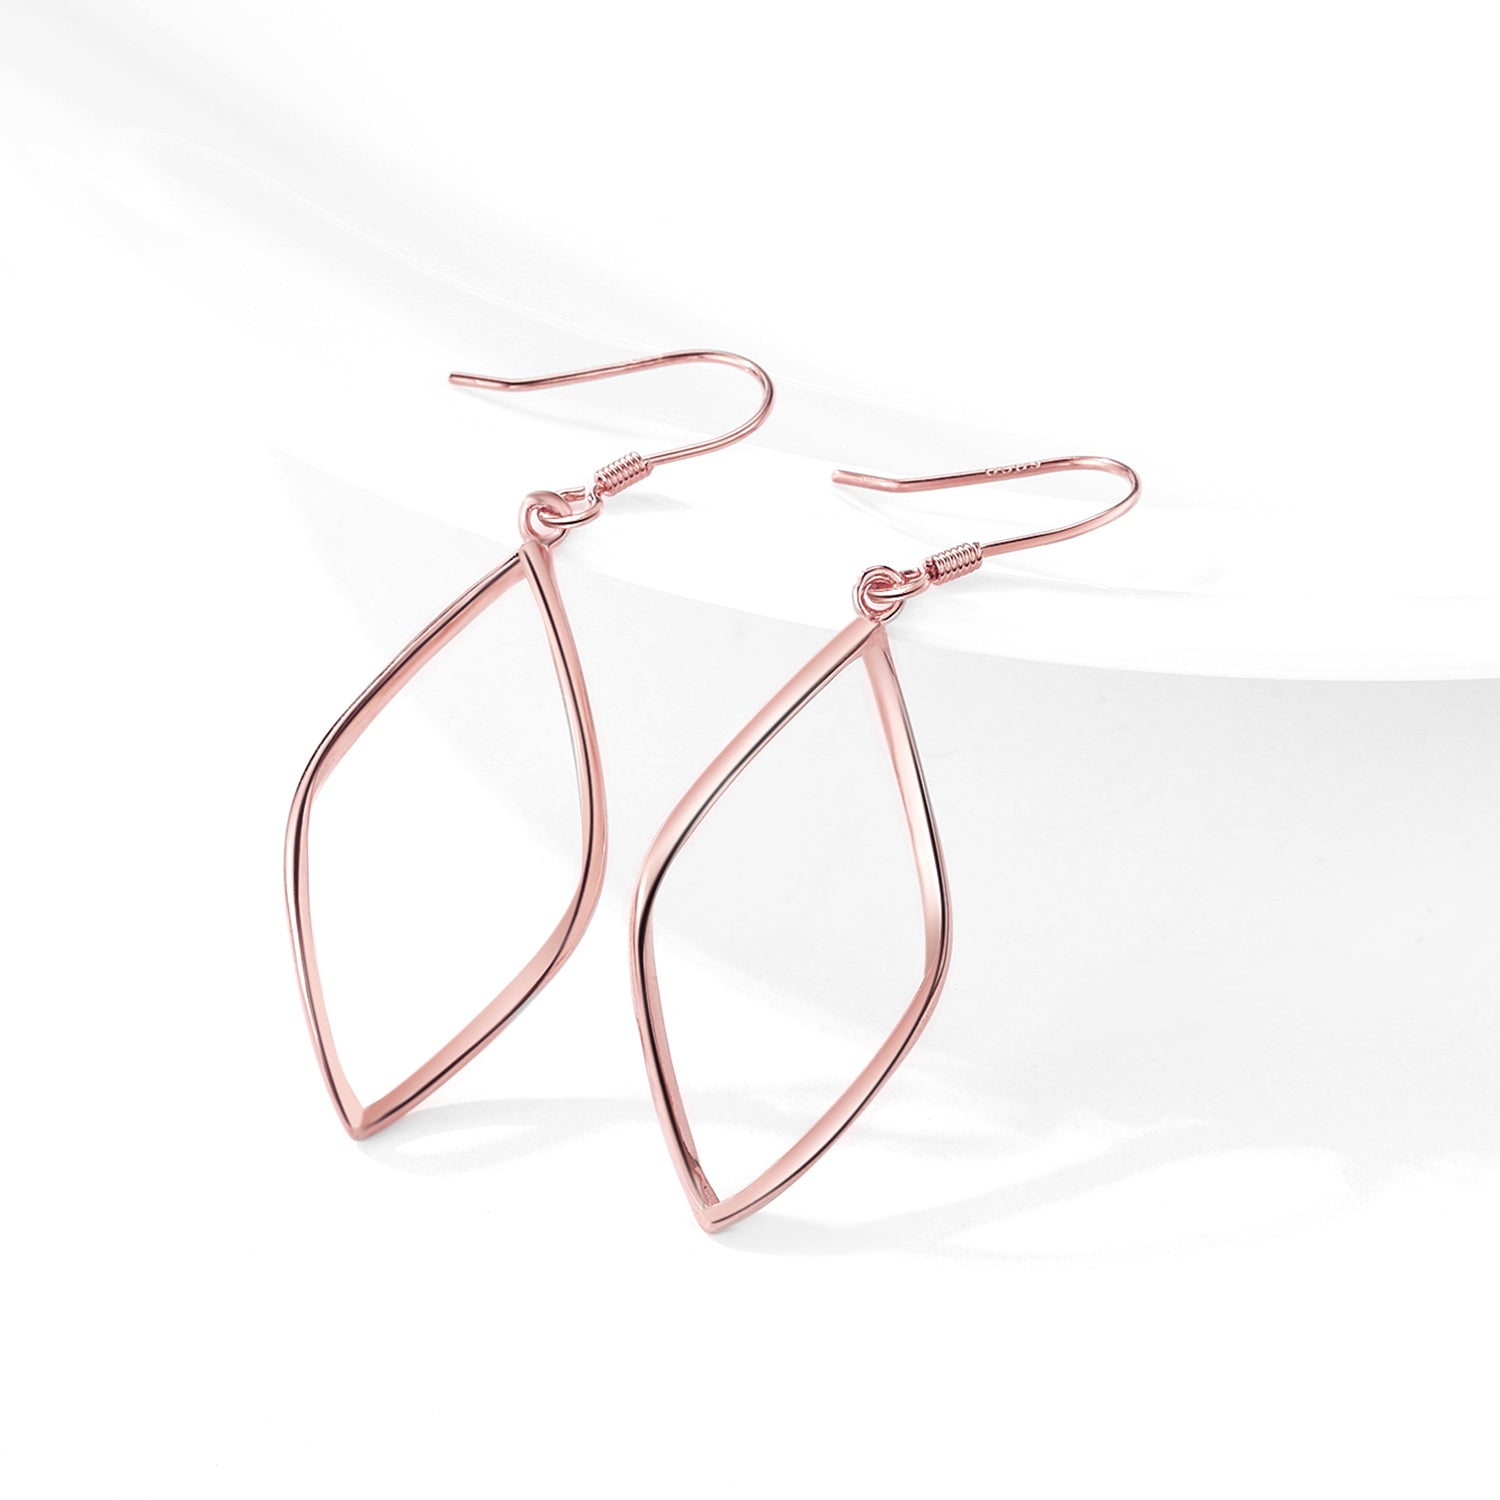 Popular New Professional Design Earring Luxury Rose Gold Jewelry Earring For Women